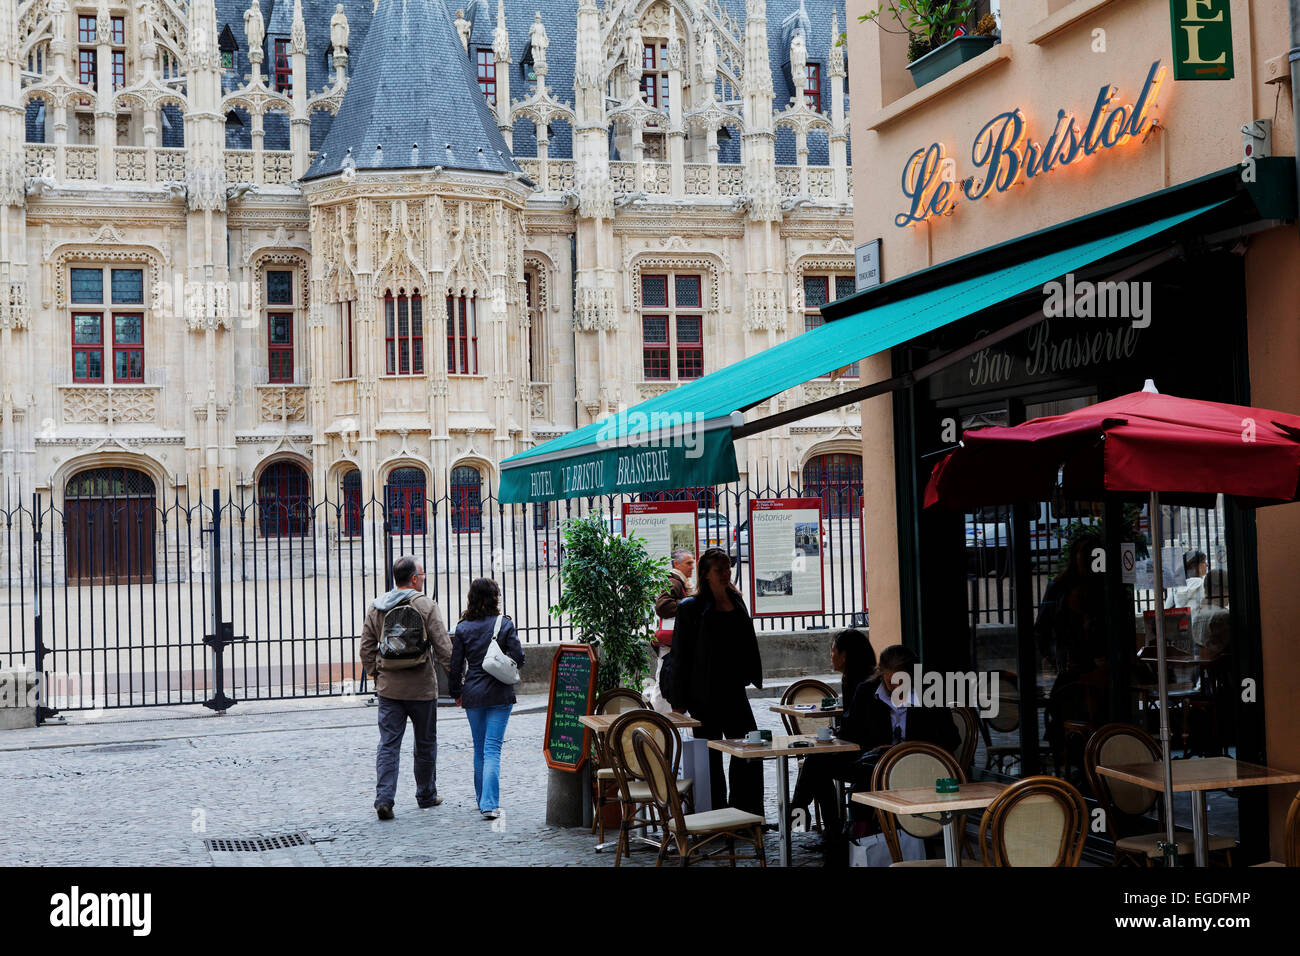 Hotel and Bistro Le Bristol and the Palais de Justice, Rouen, Seine-Maritime, Normandy, France - Stock Image